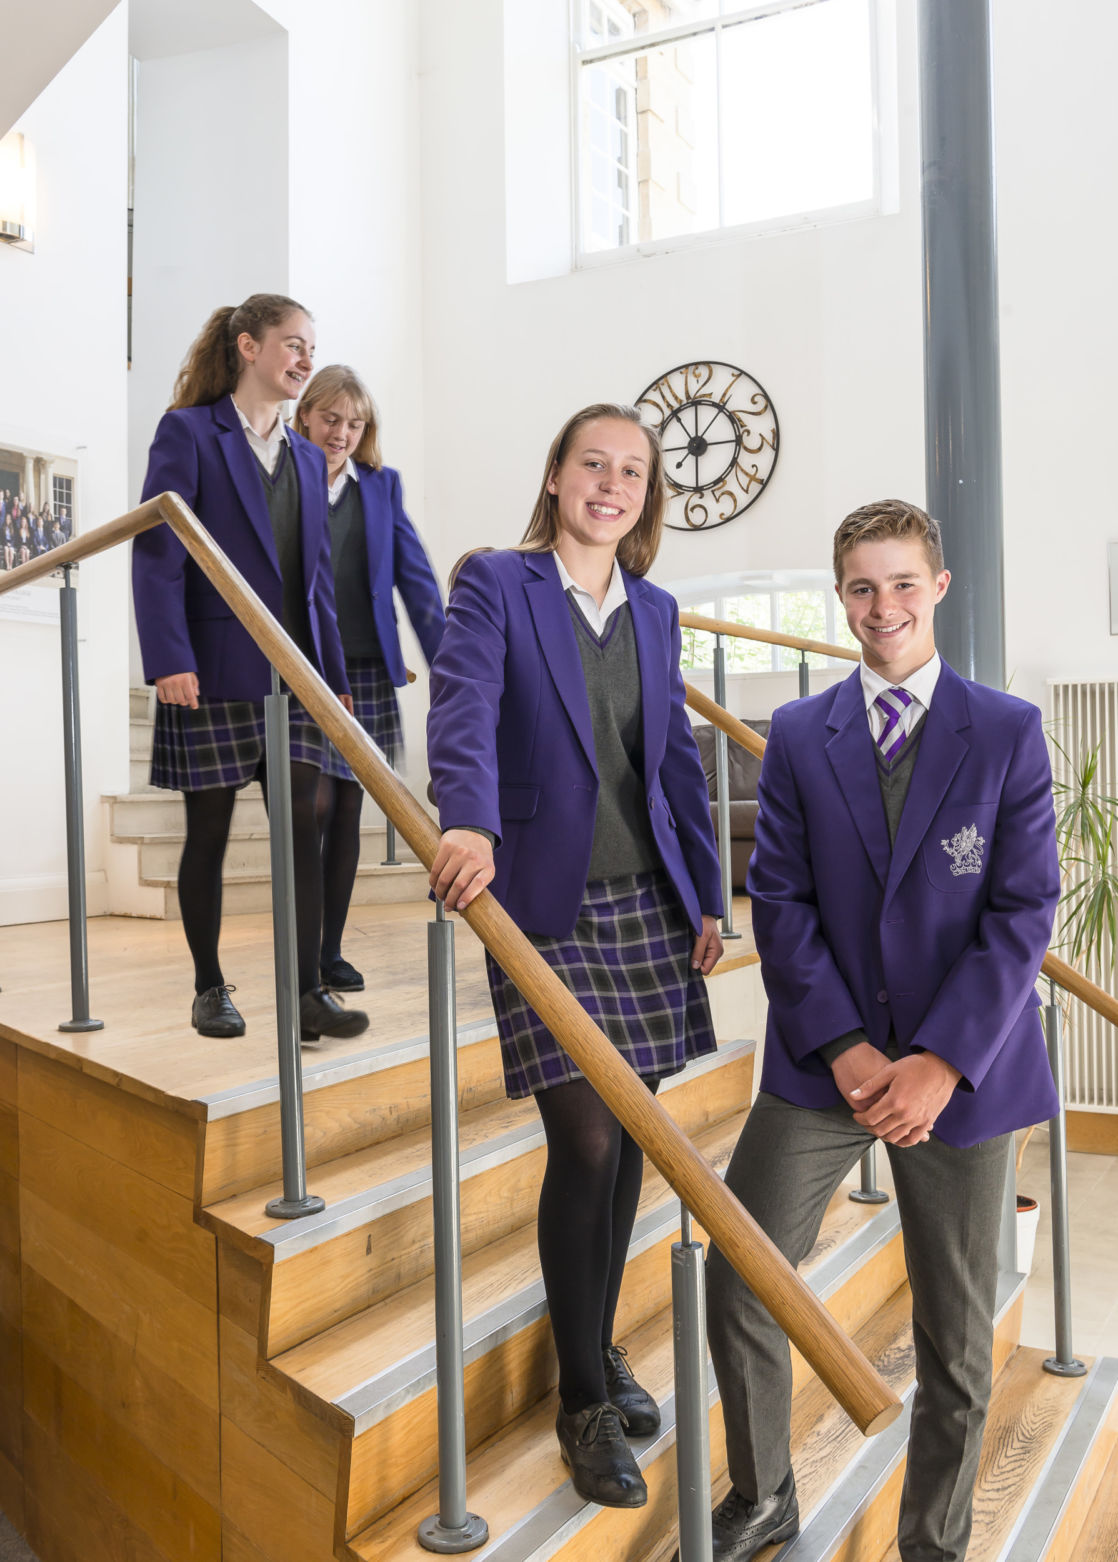 wycliffe senior students posing in a staircase